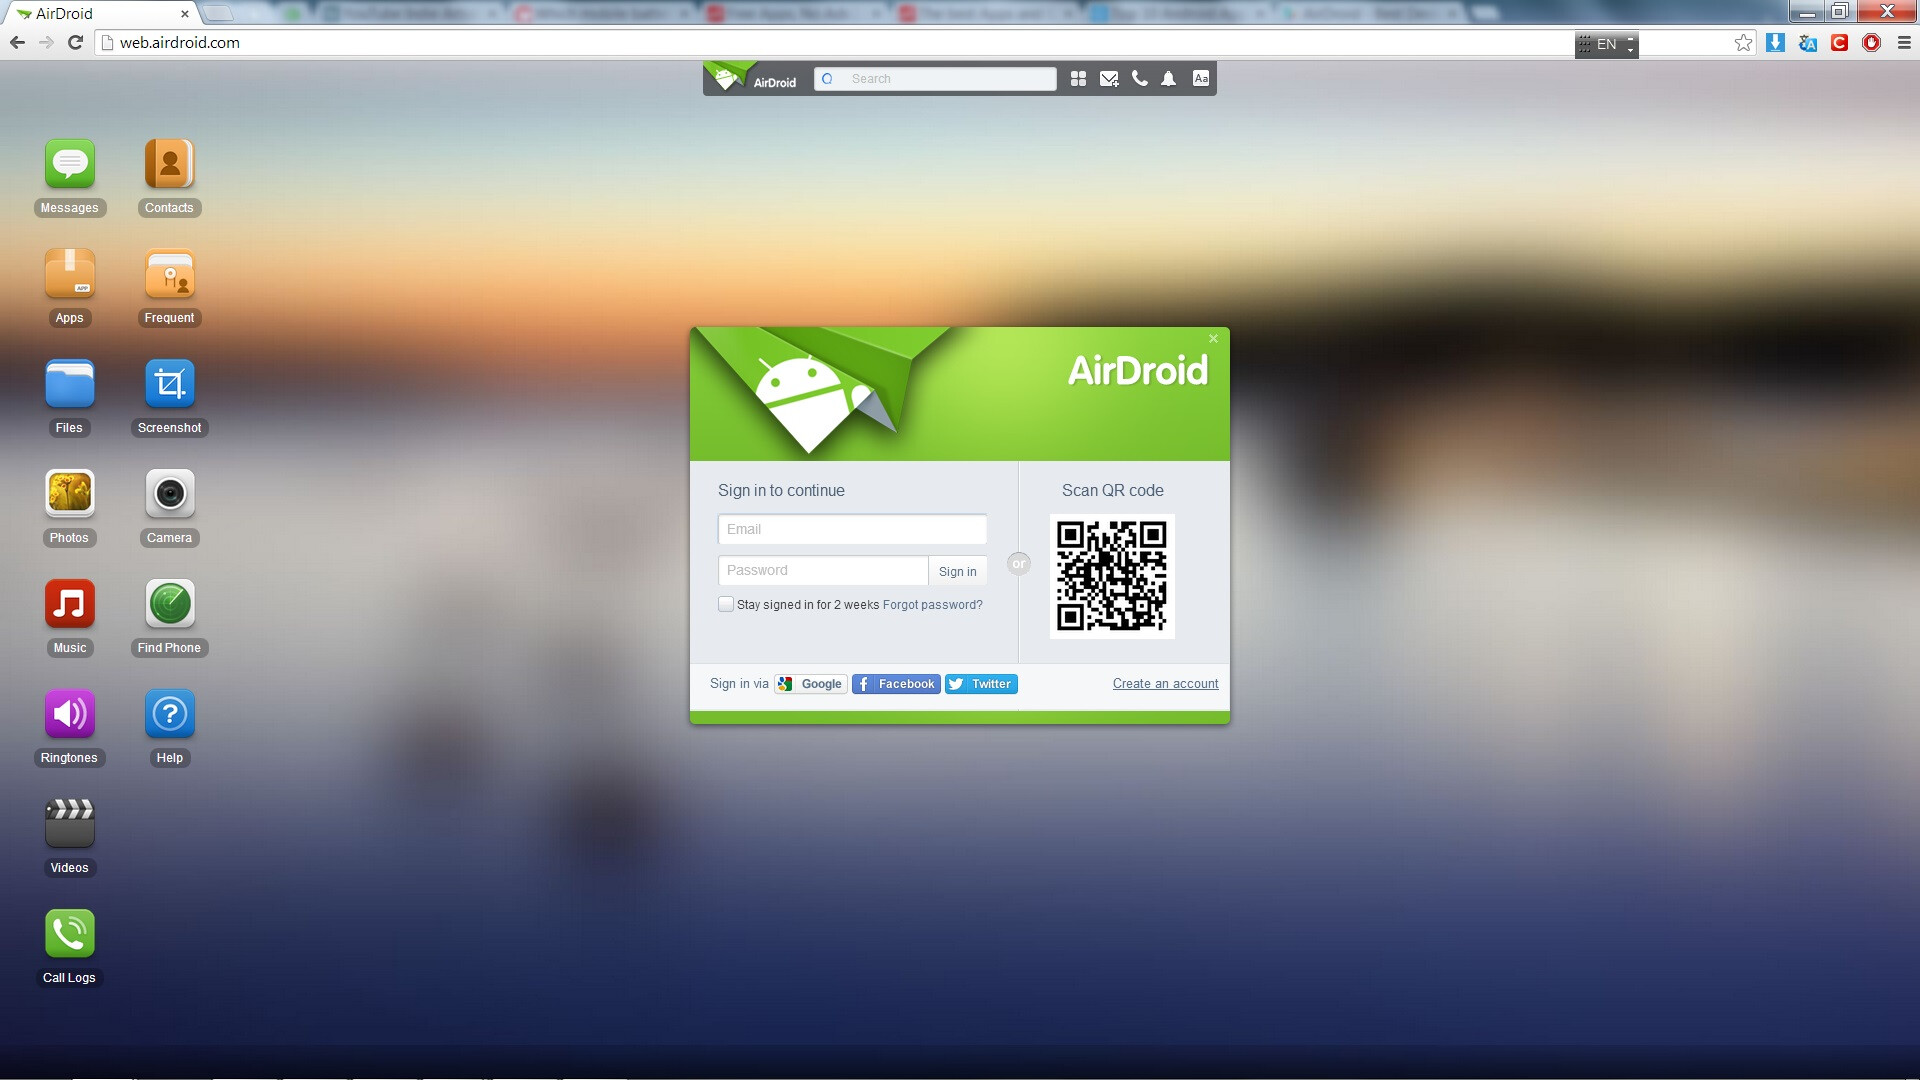 airdroid how to connect account to new phone